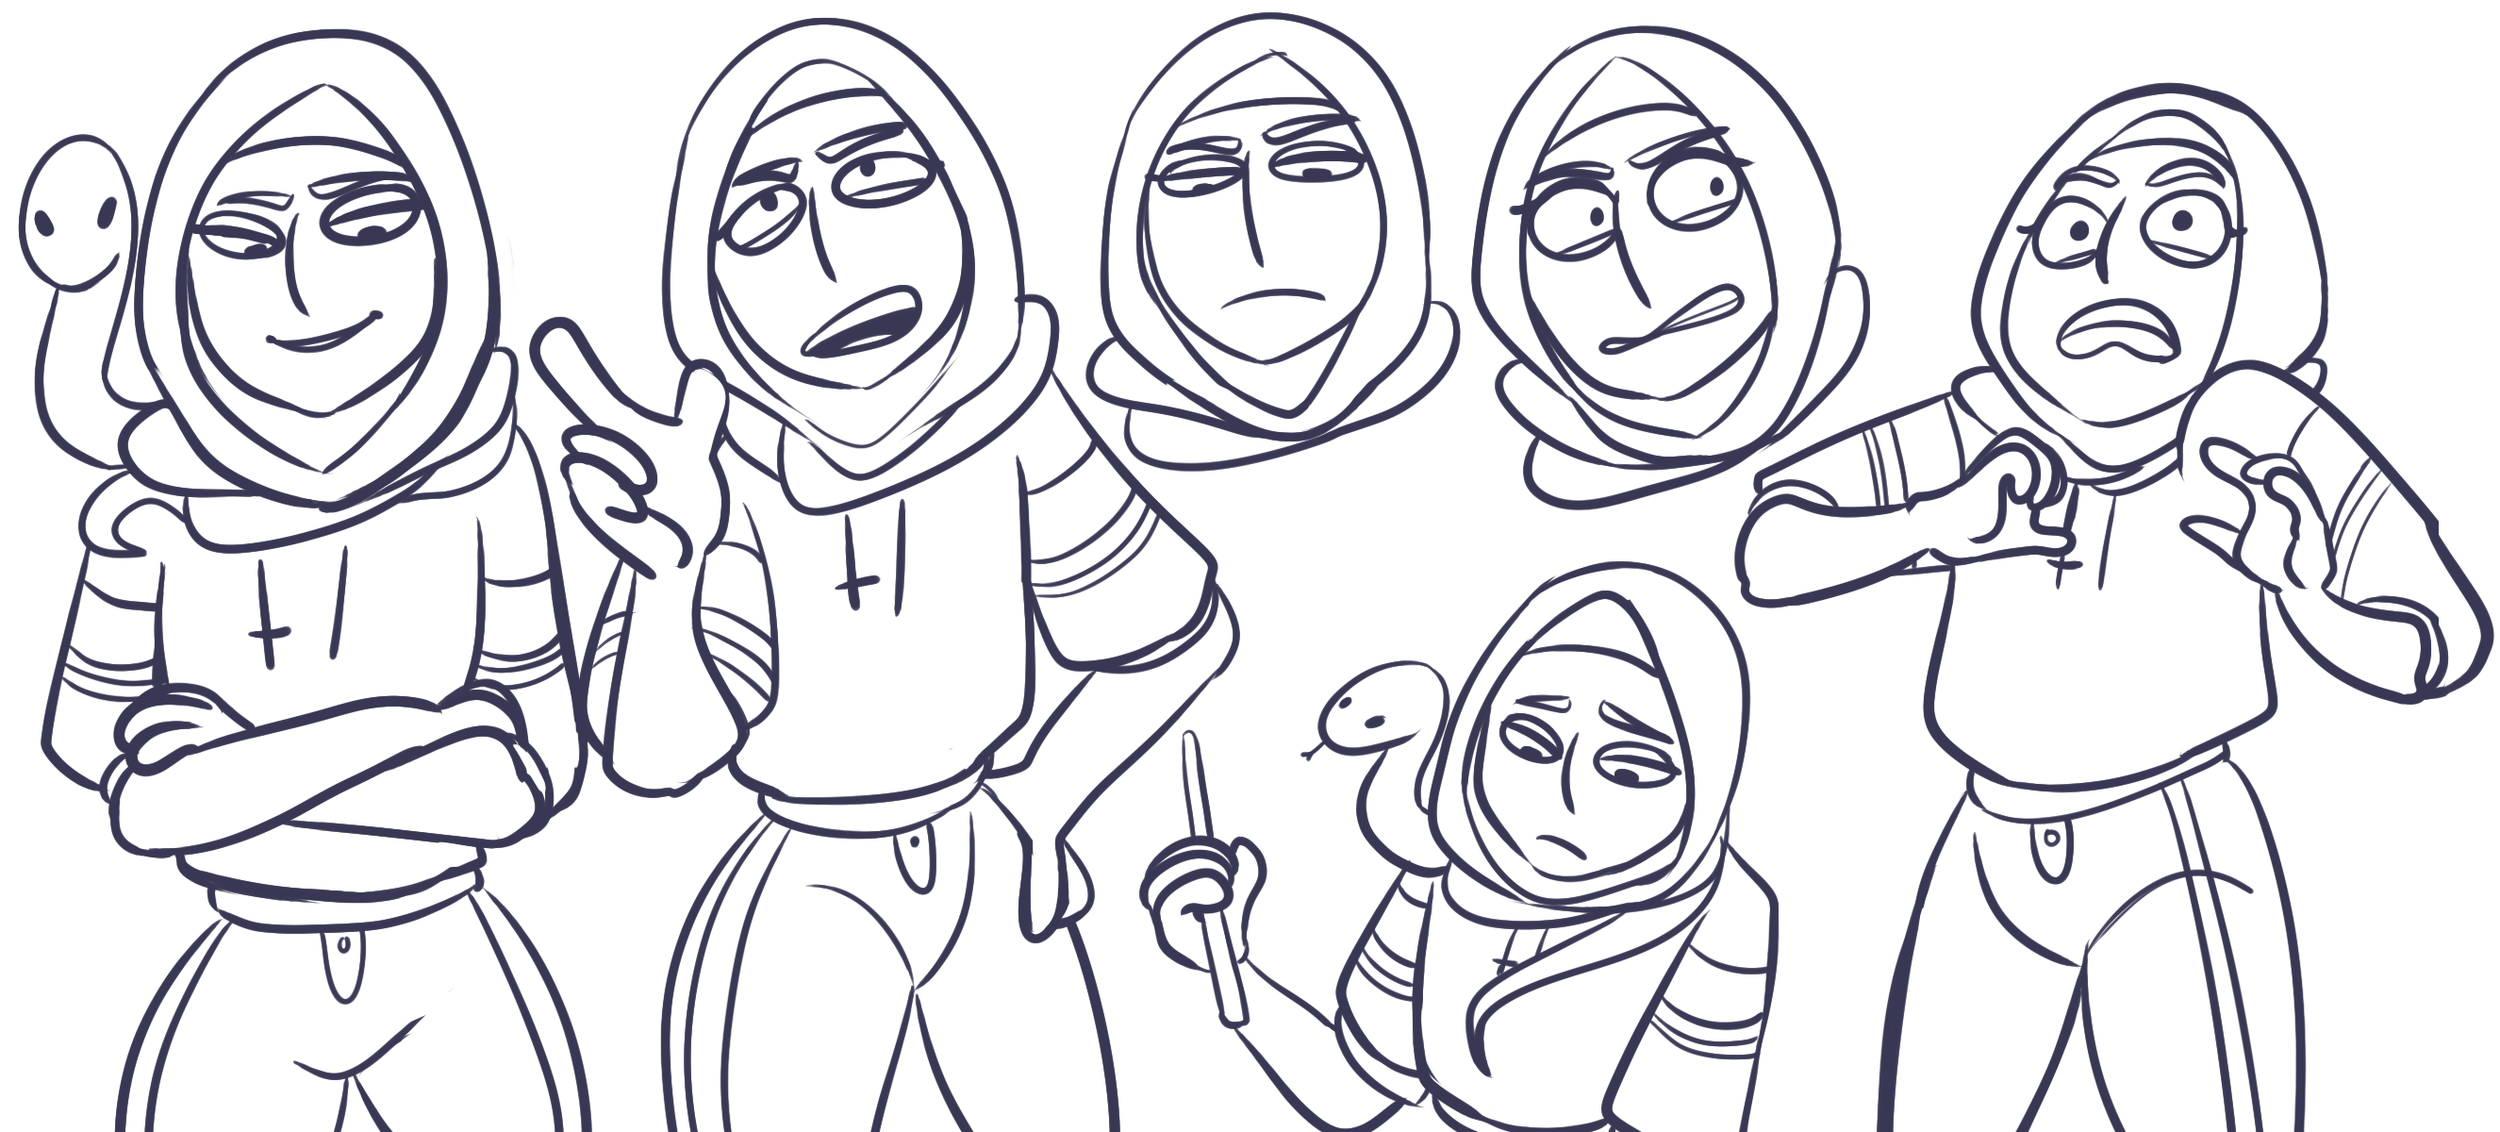 anna expressions.png